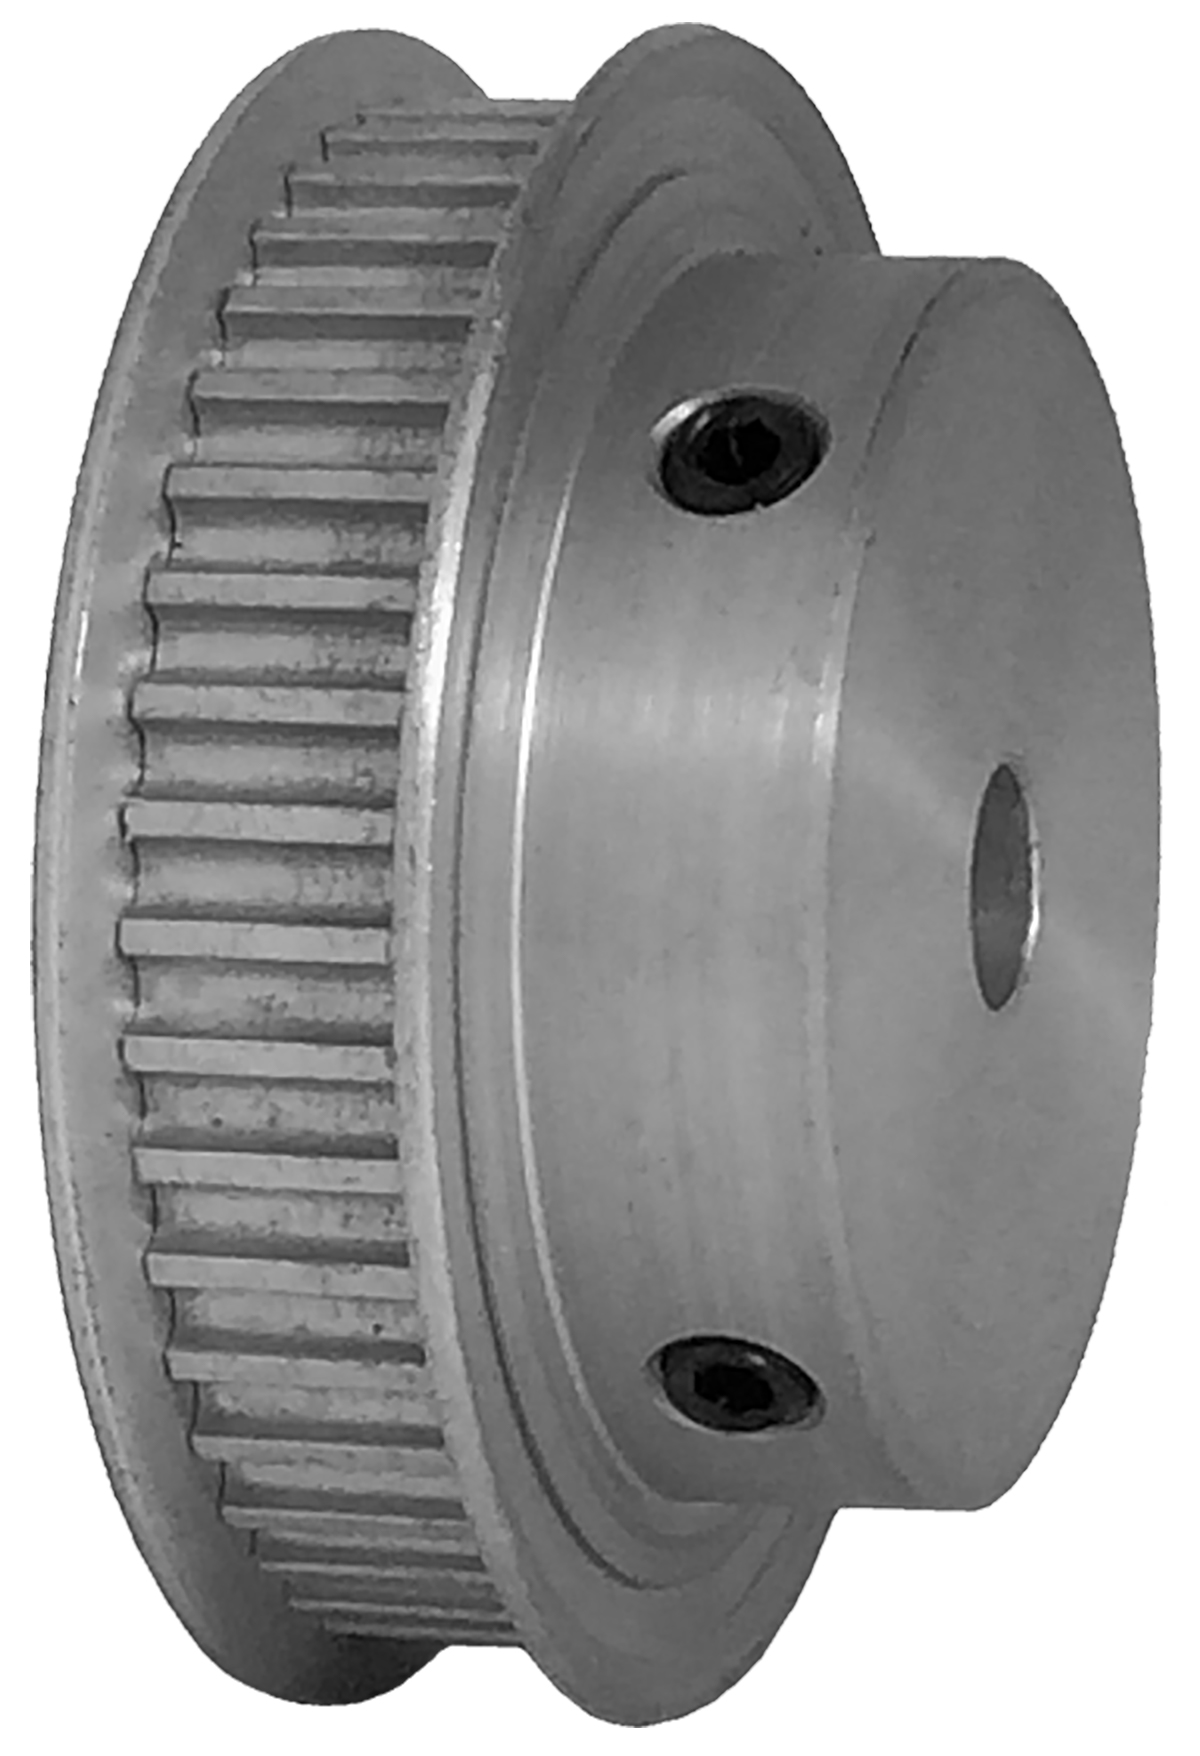 44-3M06-6FA3 - Aluminum Powerhouse®HTD® Pulleys